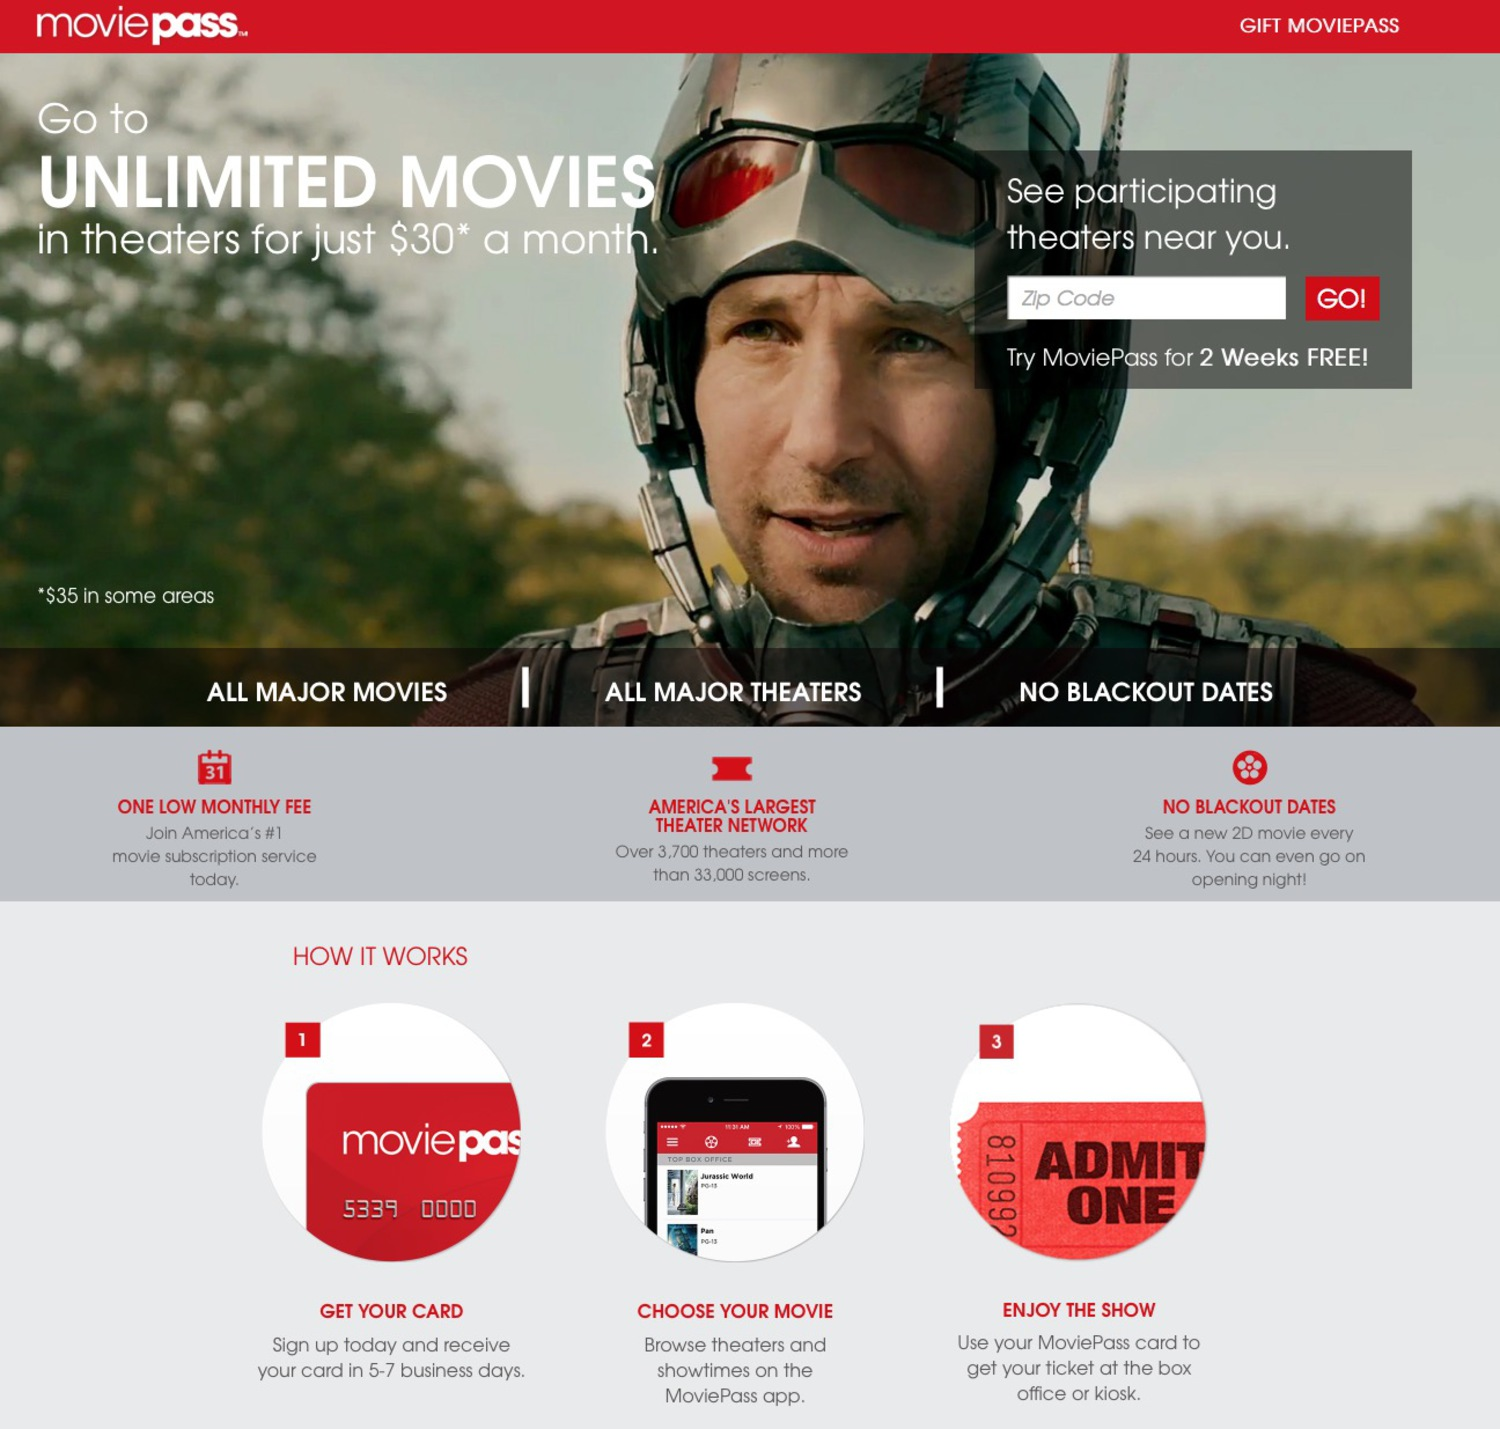 Moviepass Offers Unlimited Movies in Theaters for Just $35 a Month